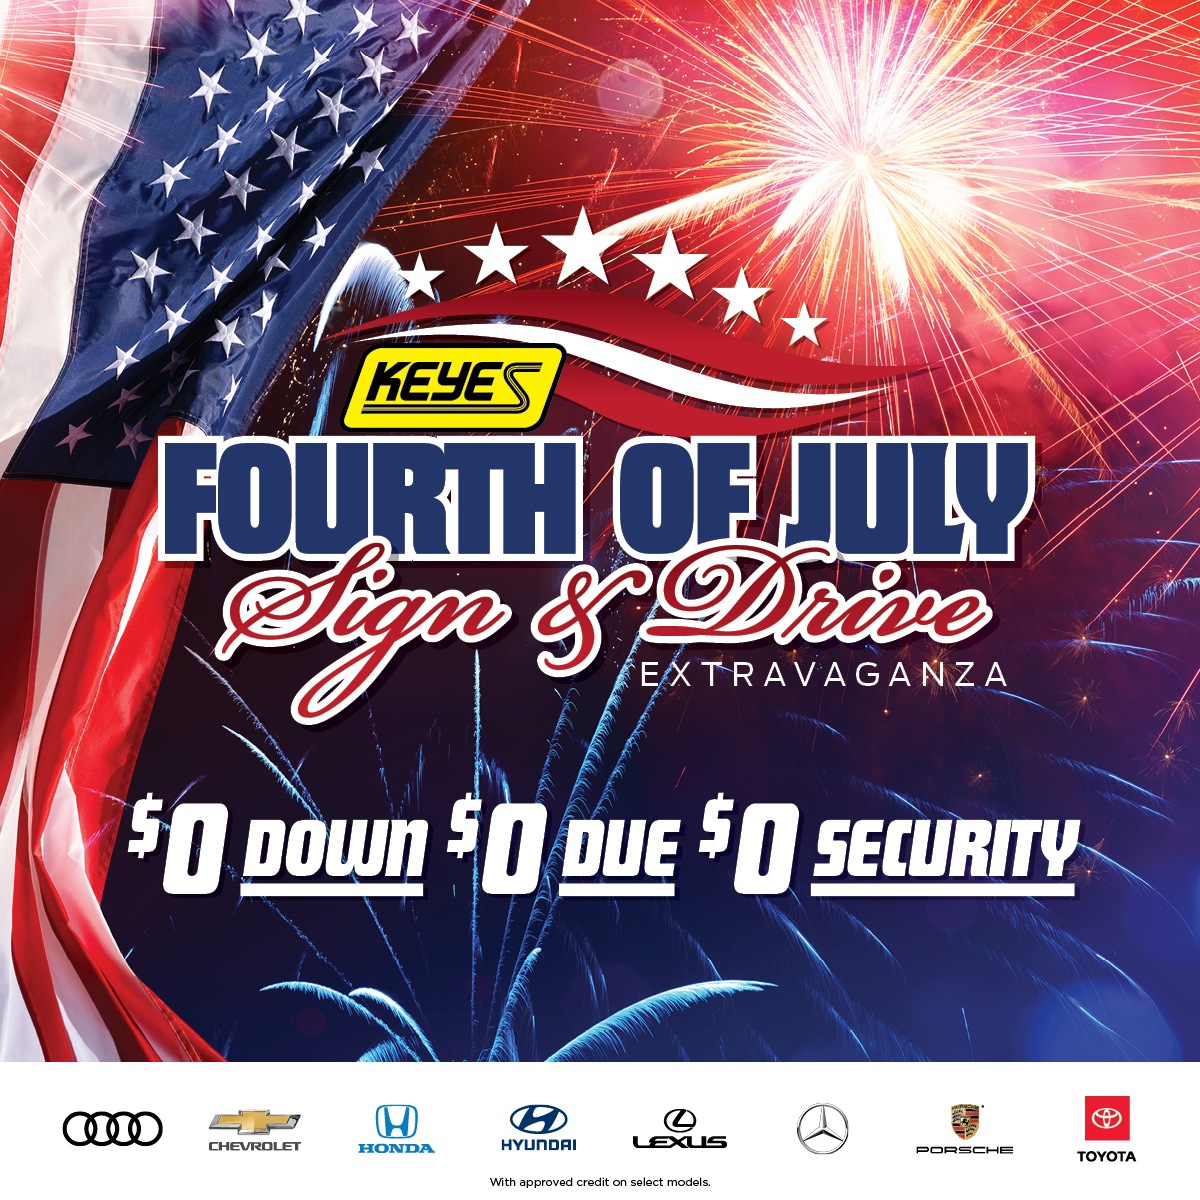 Ready for a new ride?  Check out @keyescars 4th of July Sign & Drive Extravaganza. Keyes is Everywhere with 12 Locations! $0 DOWN! $0 DUE! $0 SECURITY! Visit https://t.co/TSd0eSyeRY #ad https://t.co/2Uz7ylXiBf